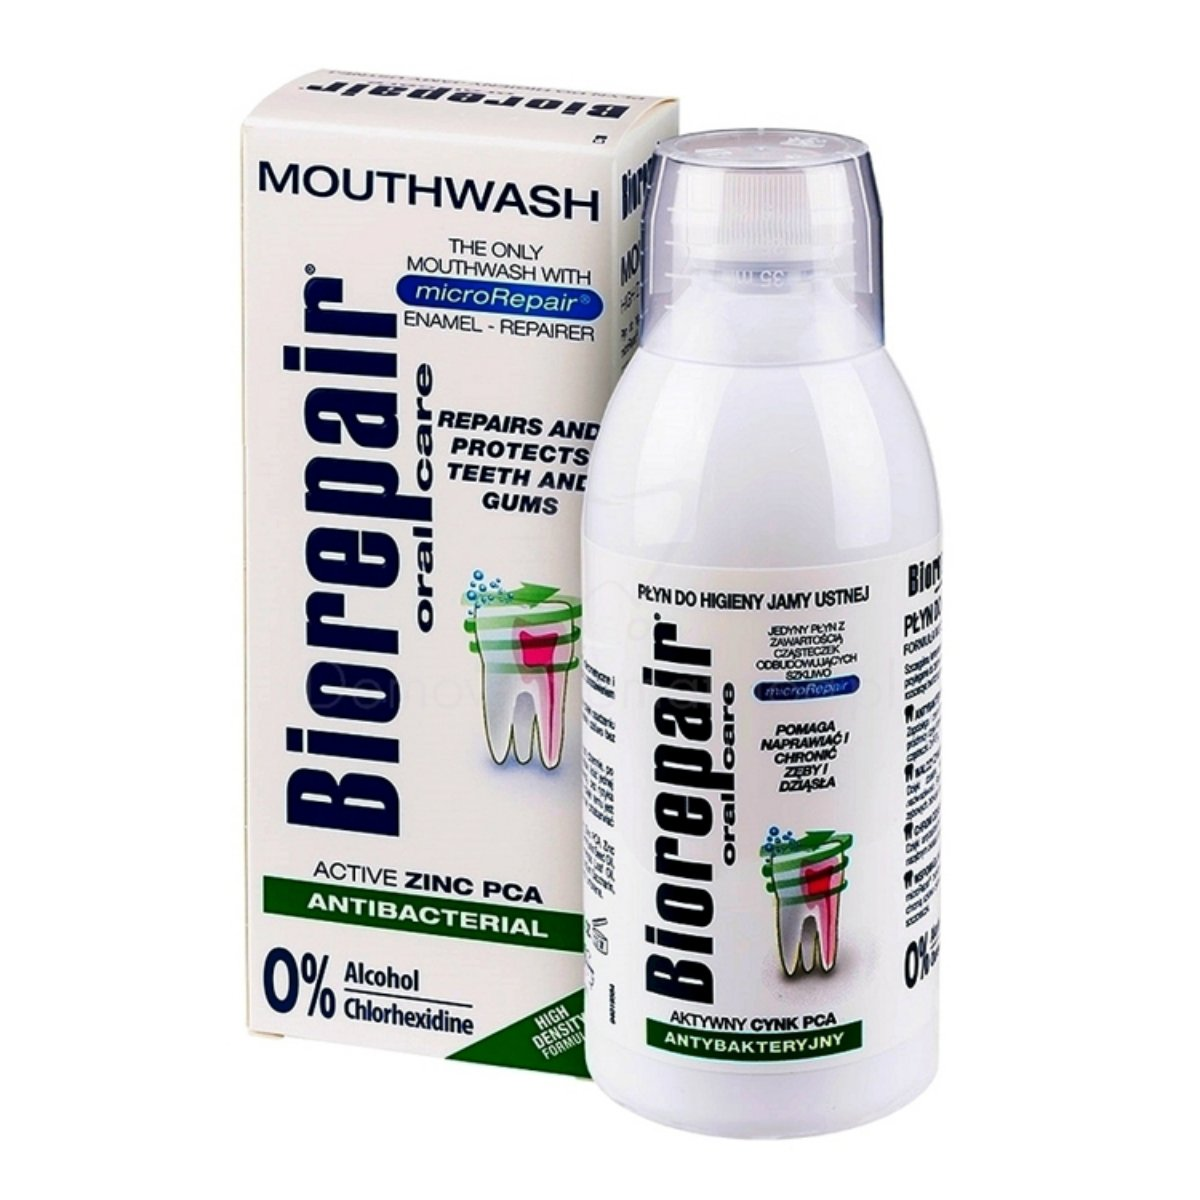 BioRepair Concentrated Mouthwash-Repairs Enamel 500ml mineralize enamel protection fill holes gradually microparticle repairs toothrevents plaque and tartar ...